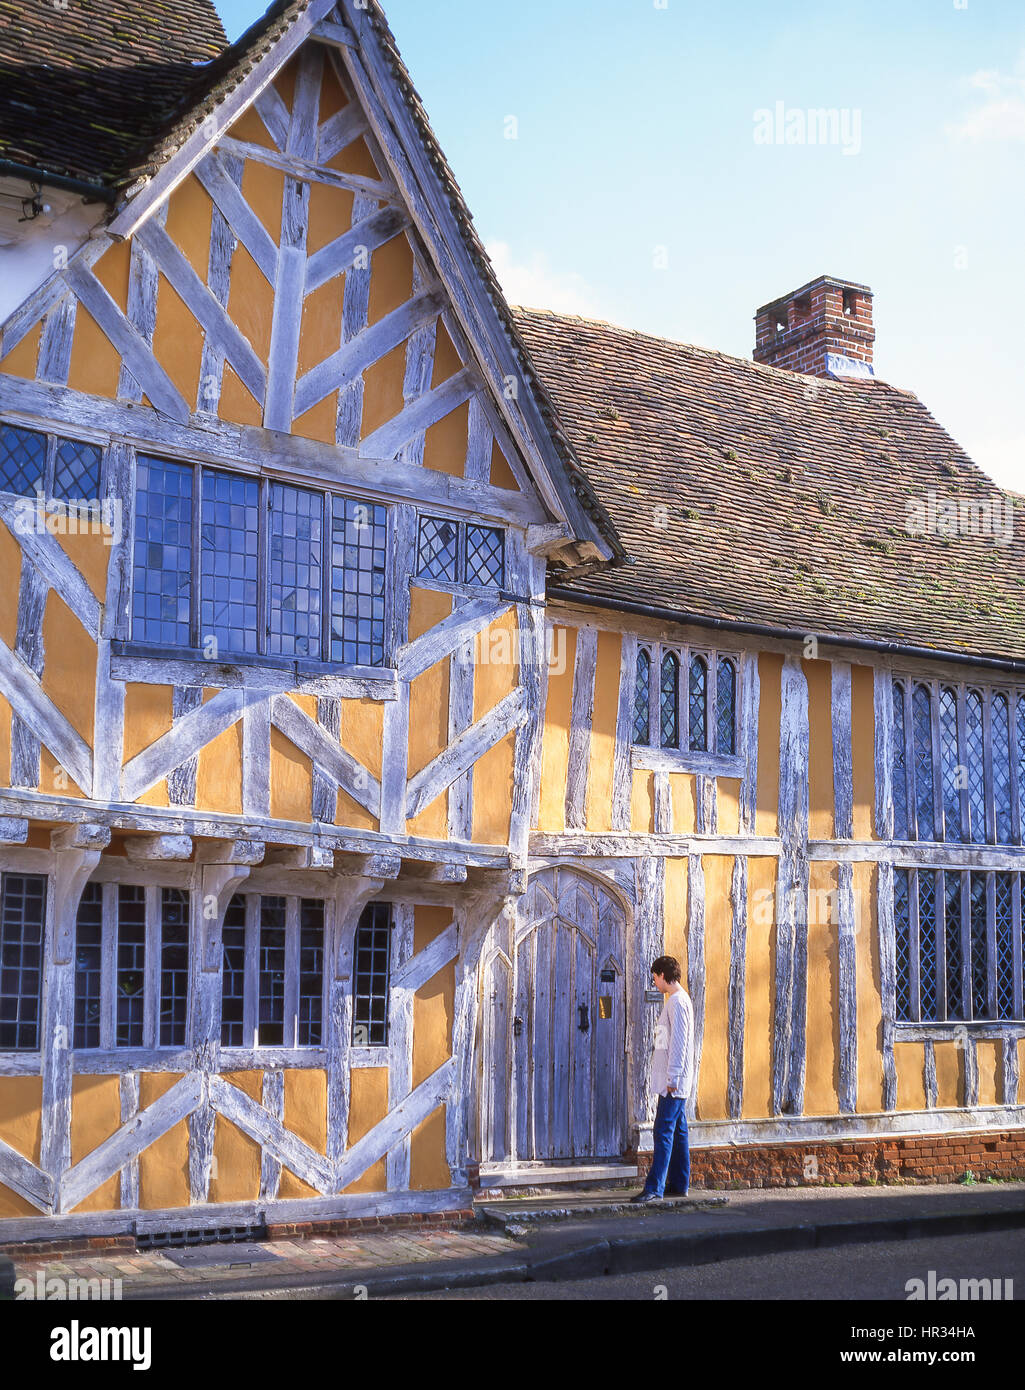 15th century Little Hall, Market Square, Lavenham, Suffolk, England, United Kingdom - Stock Image